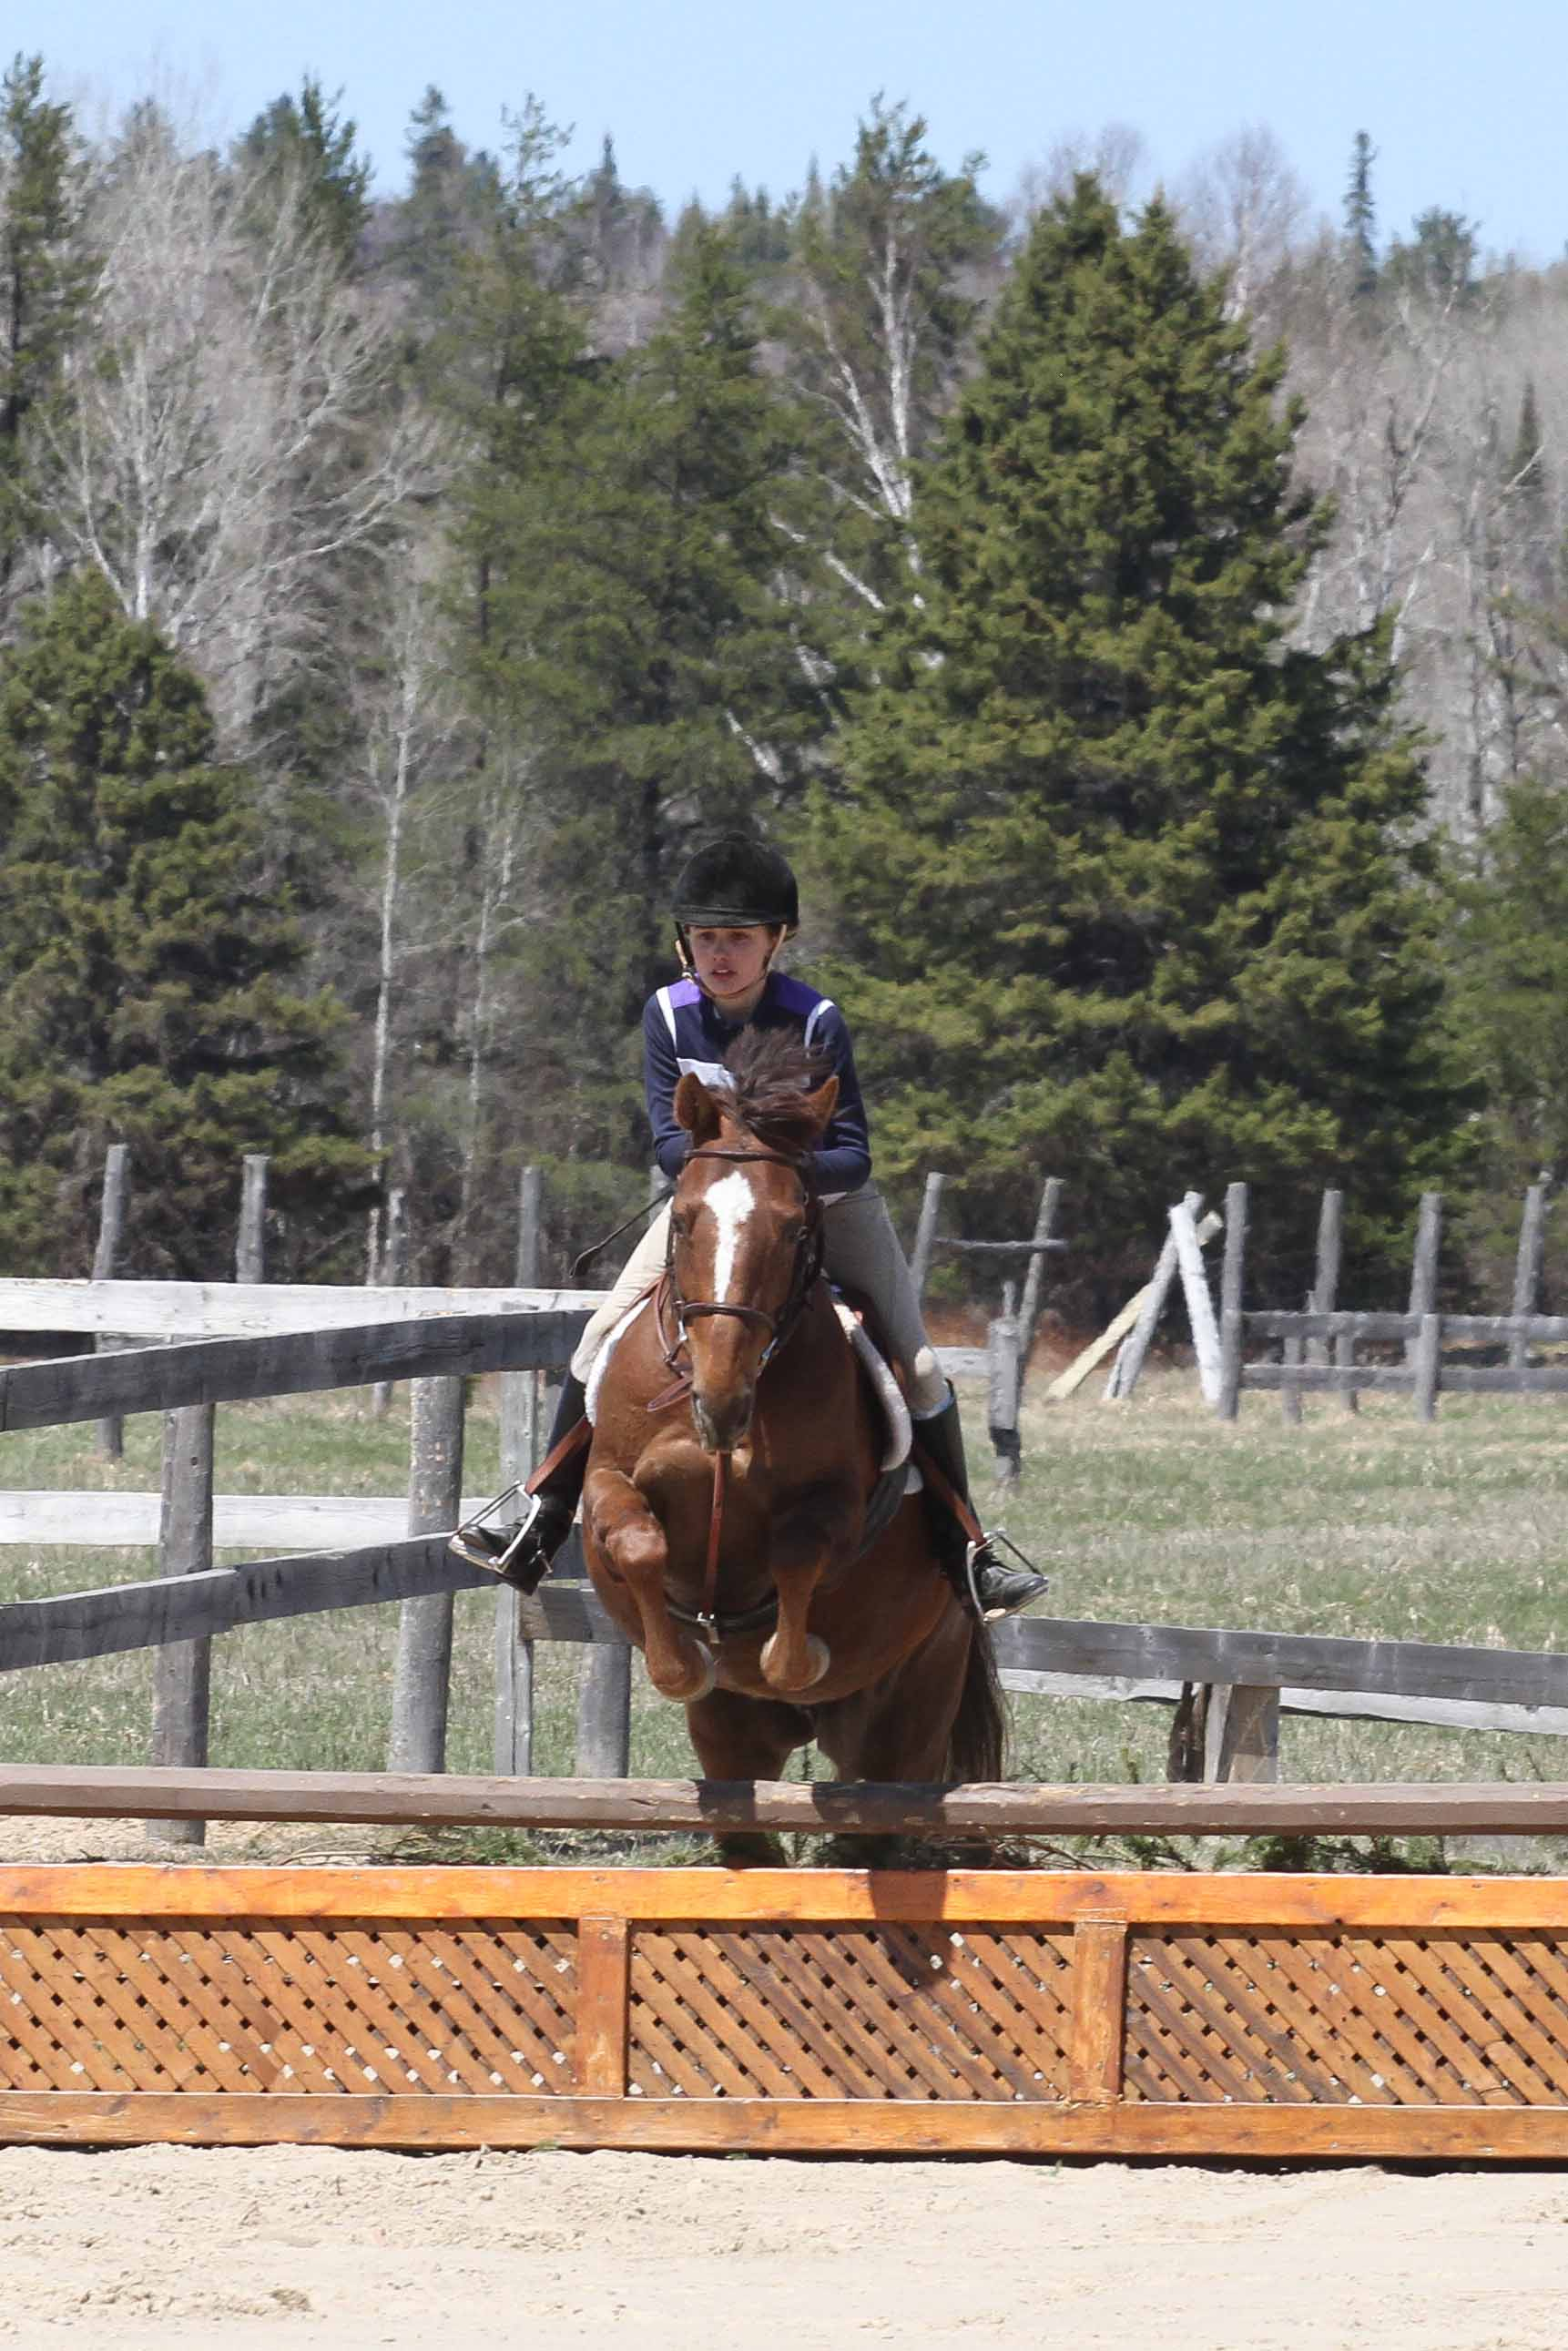 Foothills Farm Schooling Show